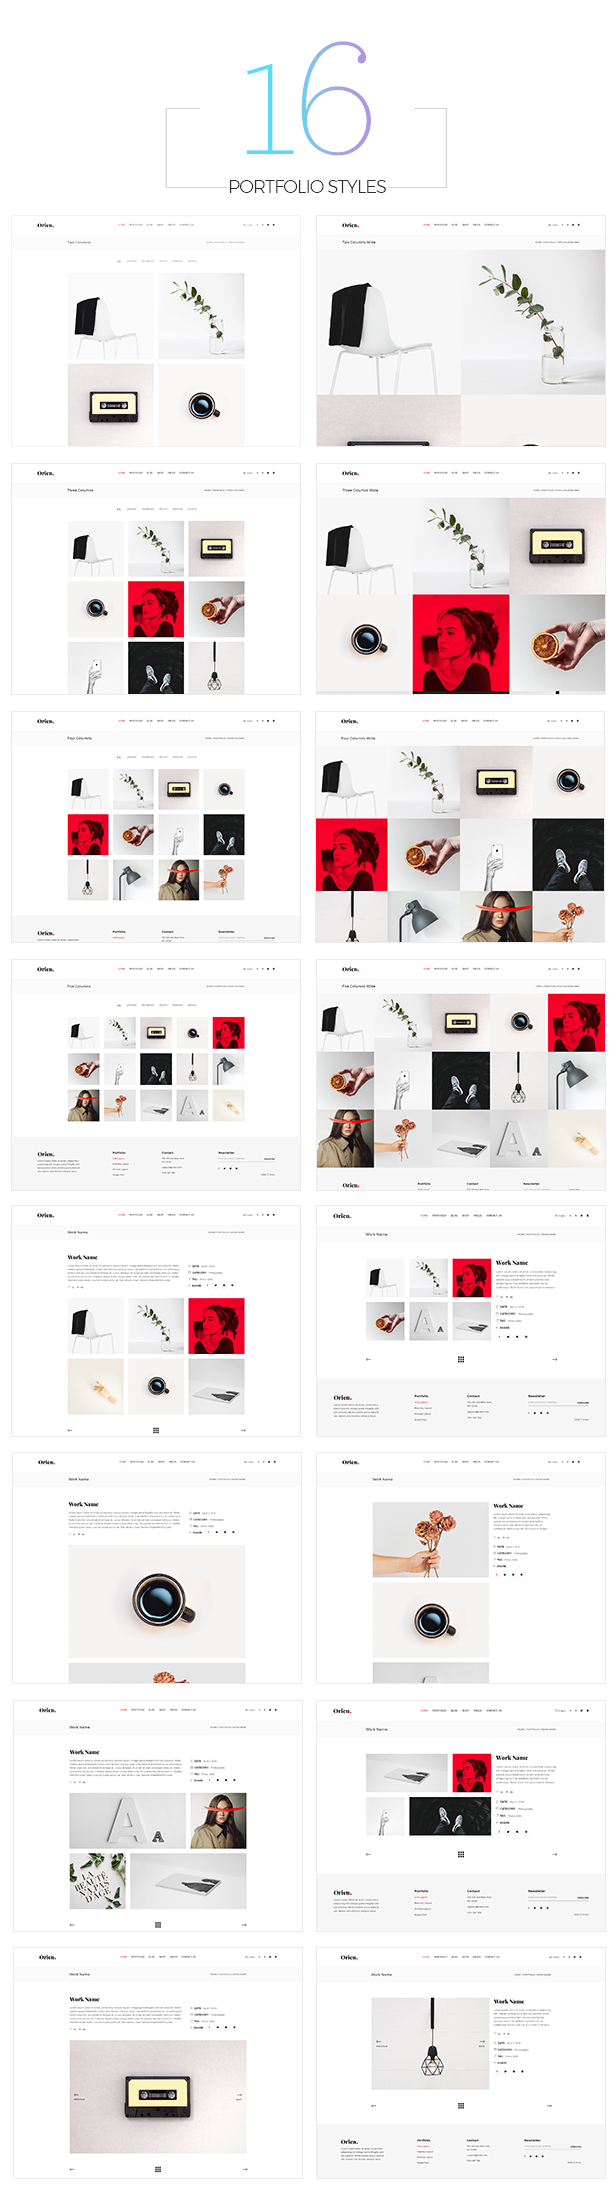 Orien - Creative Portfolio WordPress Theme - 7